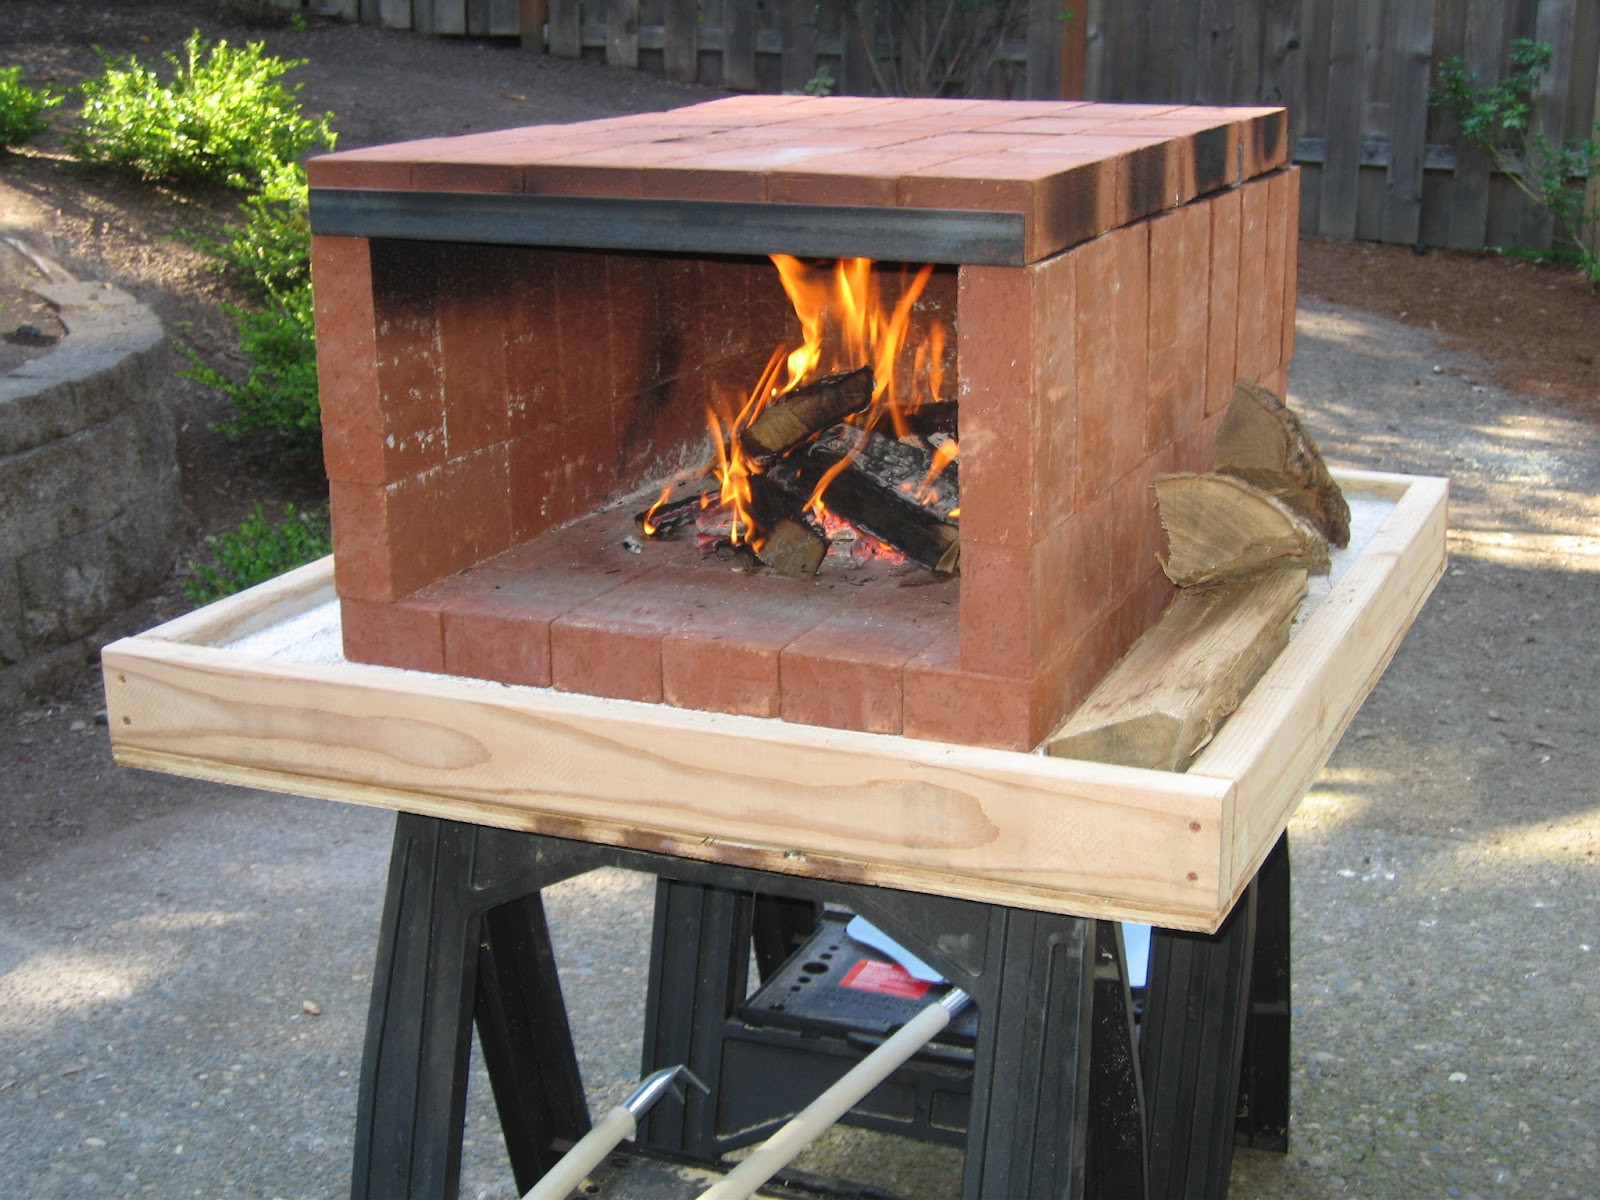 DIY Outdoor Oven  Tinkering Lab Portable Pizza Oven